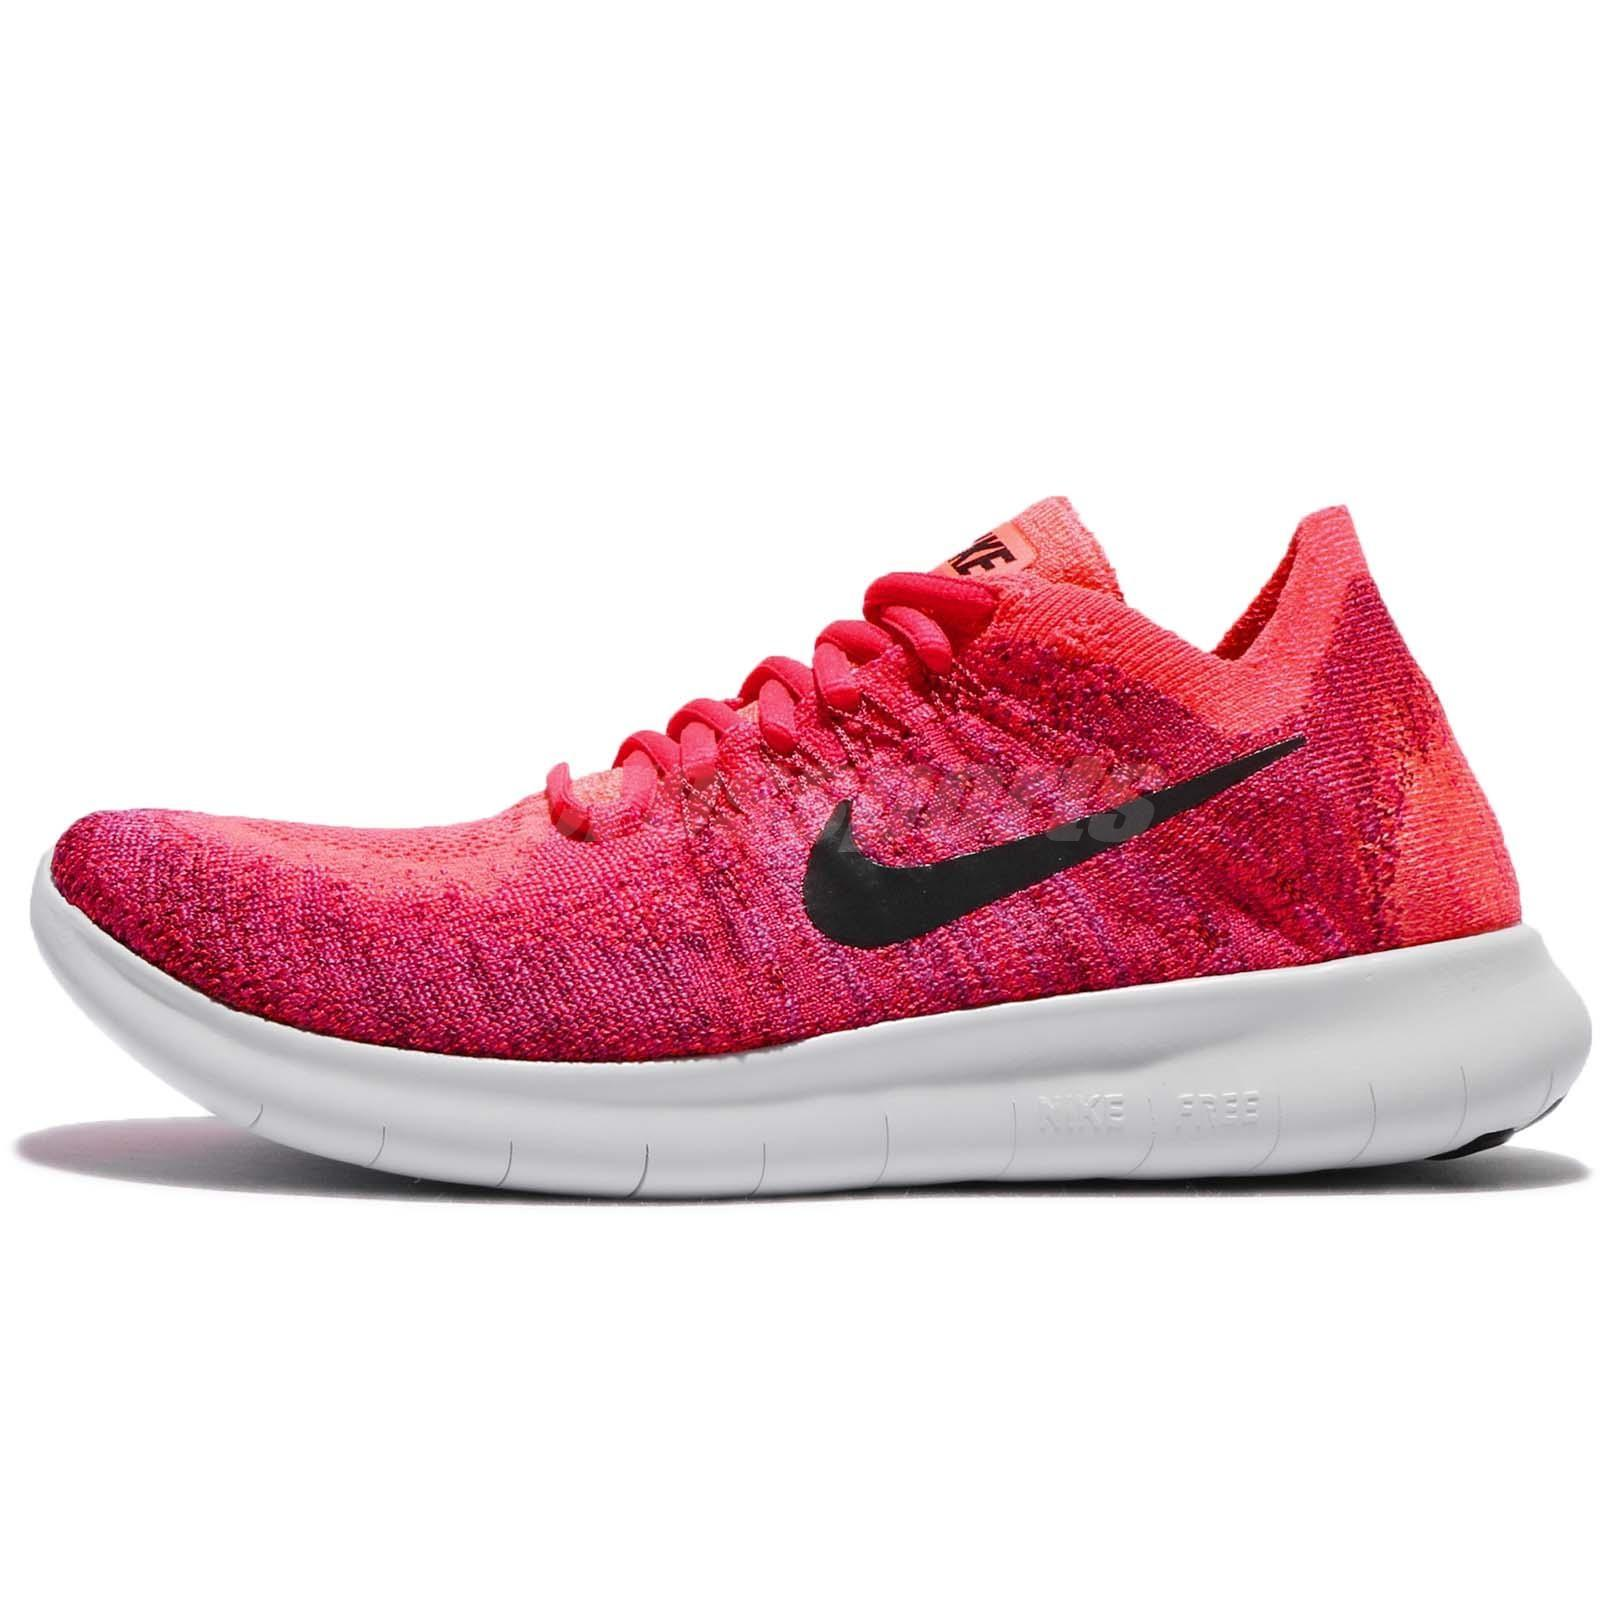 Nike Solar red Athletic. Nike Solar Red Free Rn Flyknit Sneakers Size US  7.5 Regular (M, B)